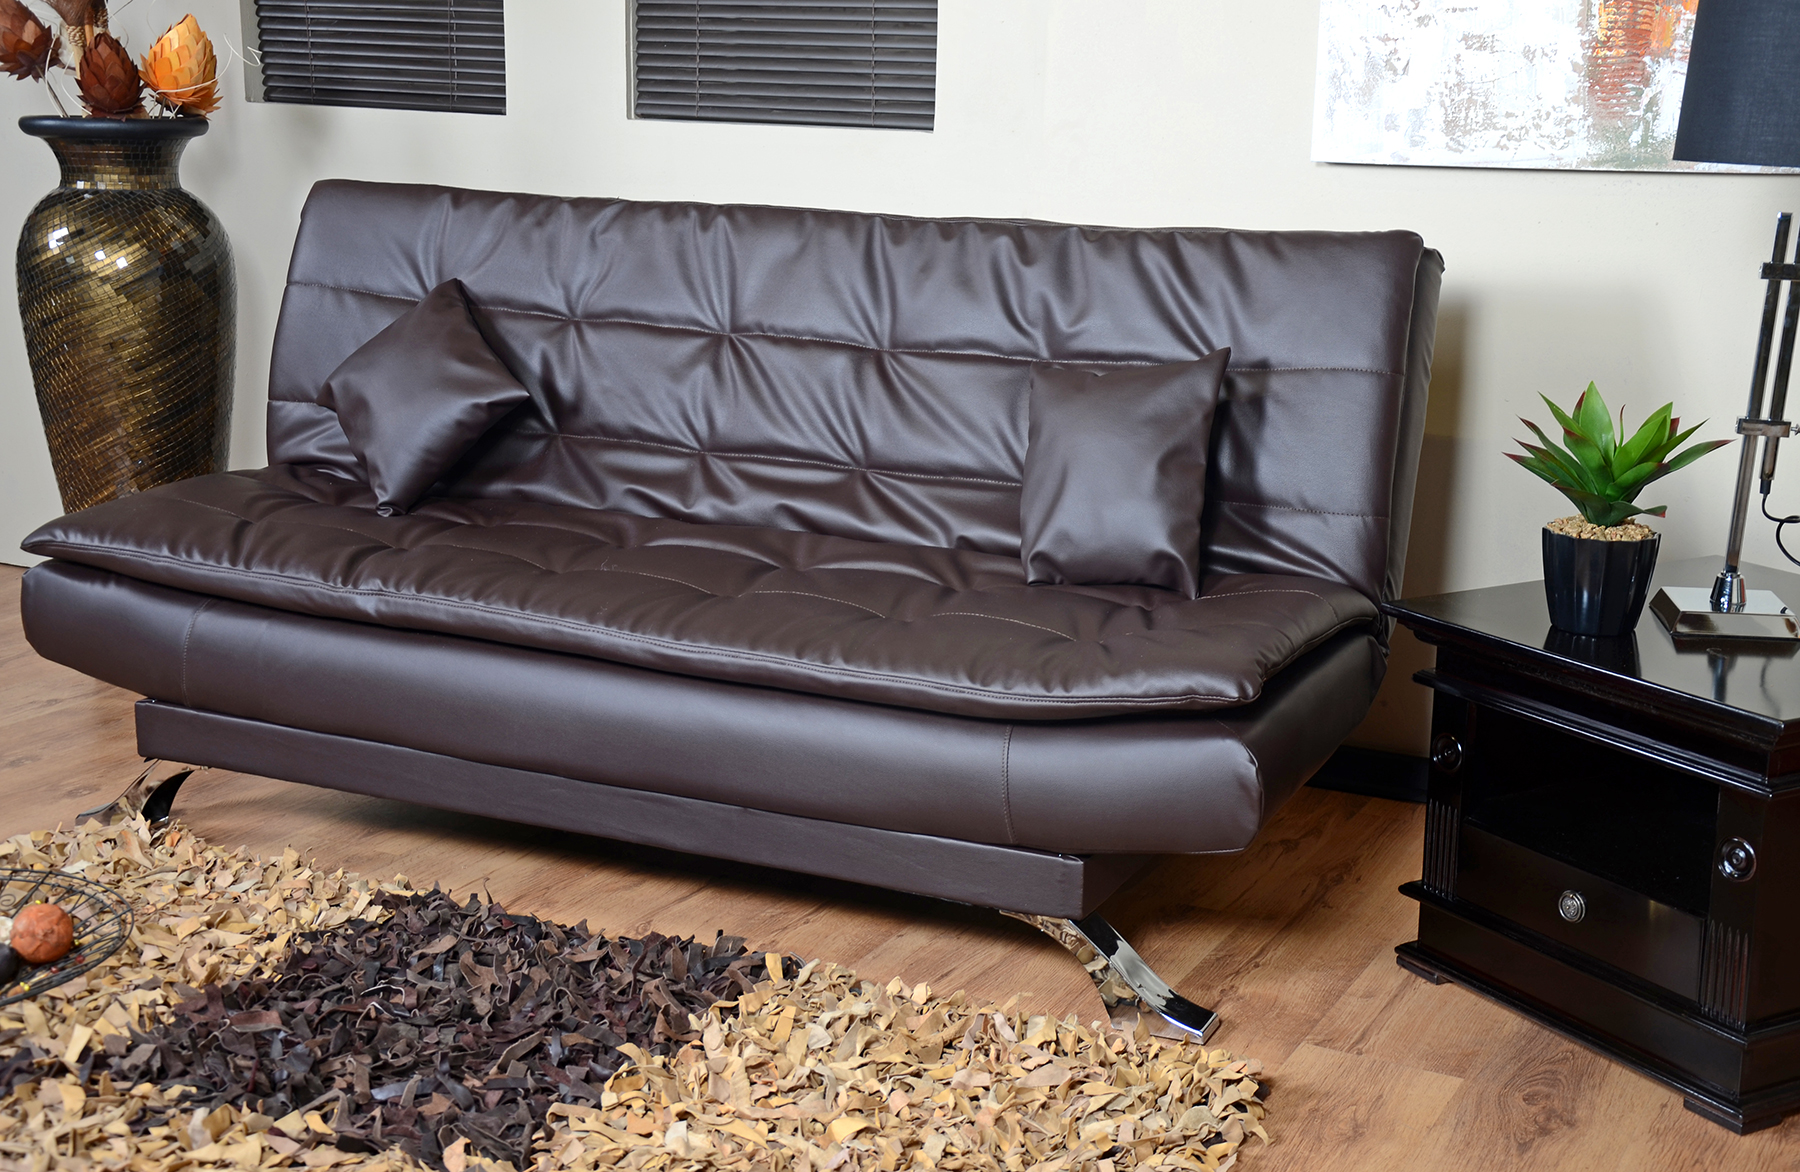 Leigh Sleeper Couch - Discount Decor - cheap mattresses, affordable